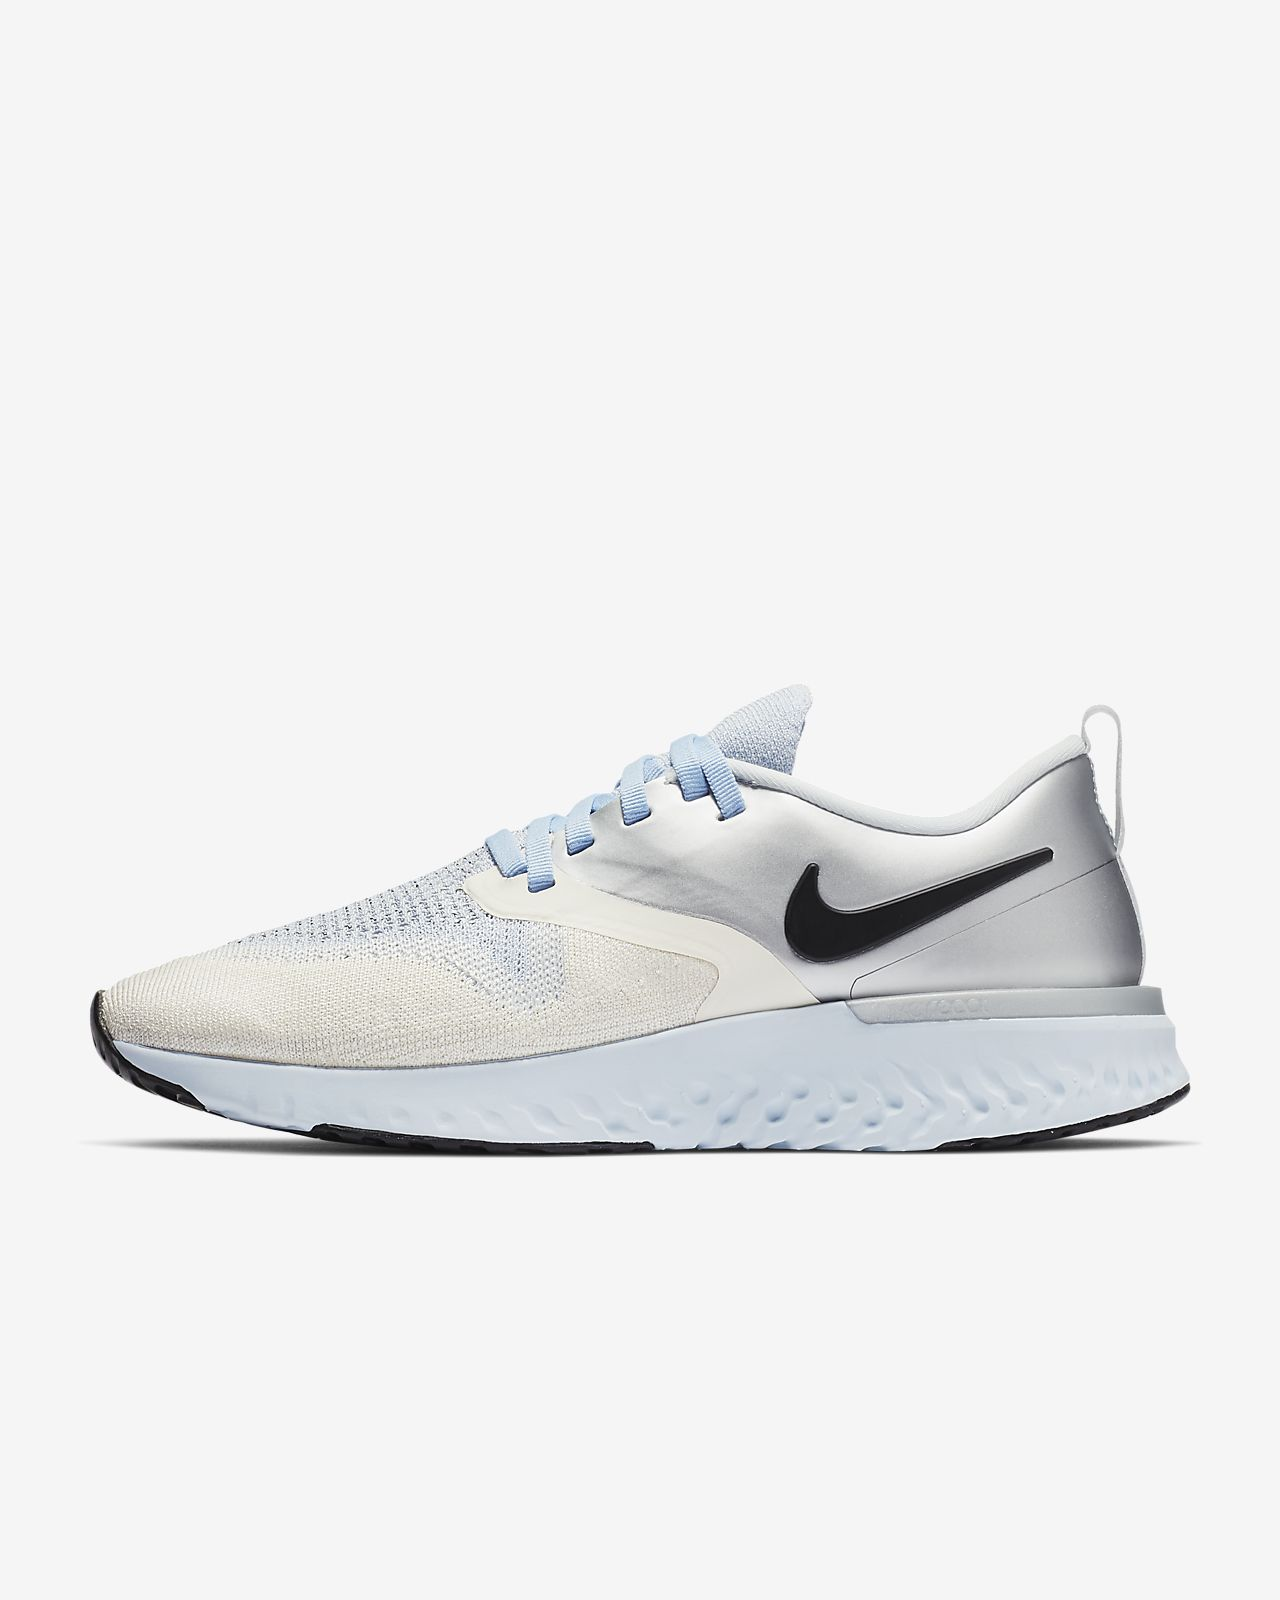 cheap for discount c2ffb ee935 ... Nike Odyssey React Flyknit 2 Premium Zapatillas de running - Mujer